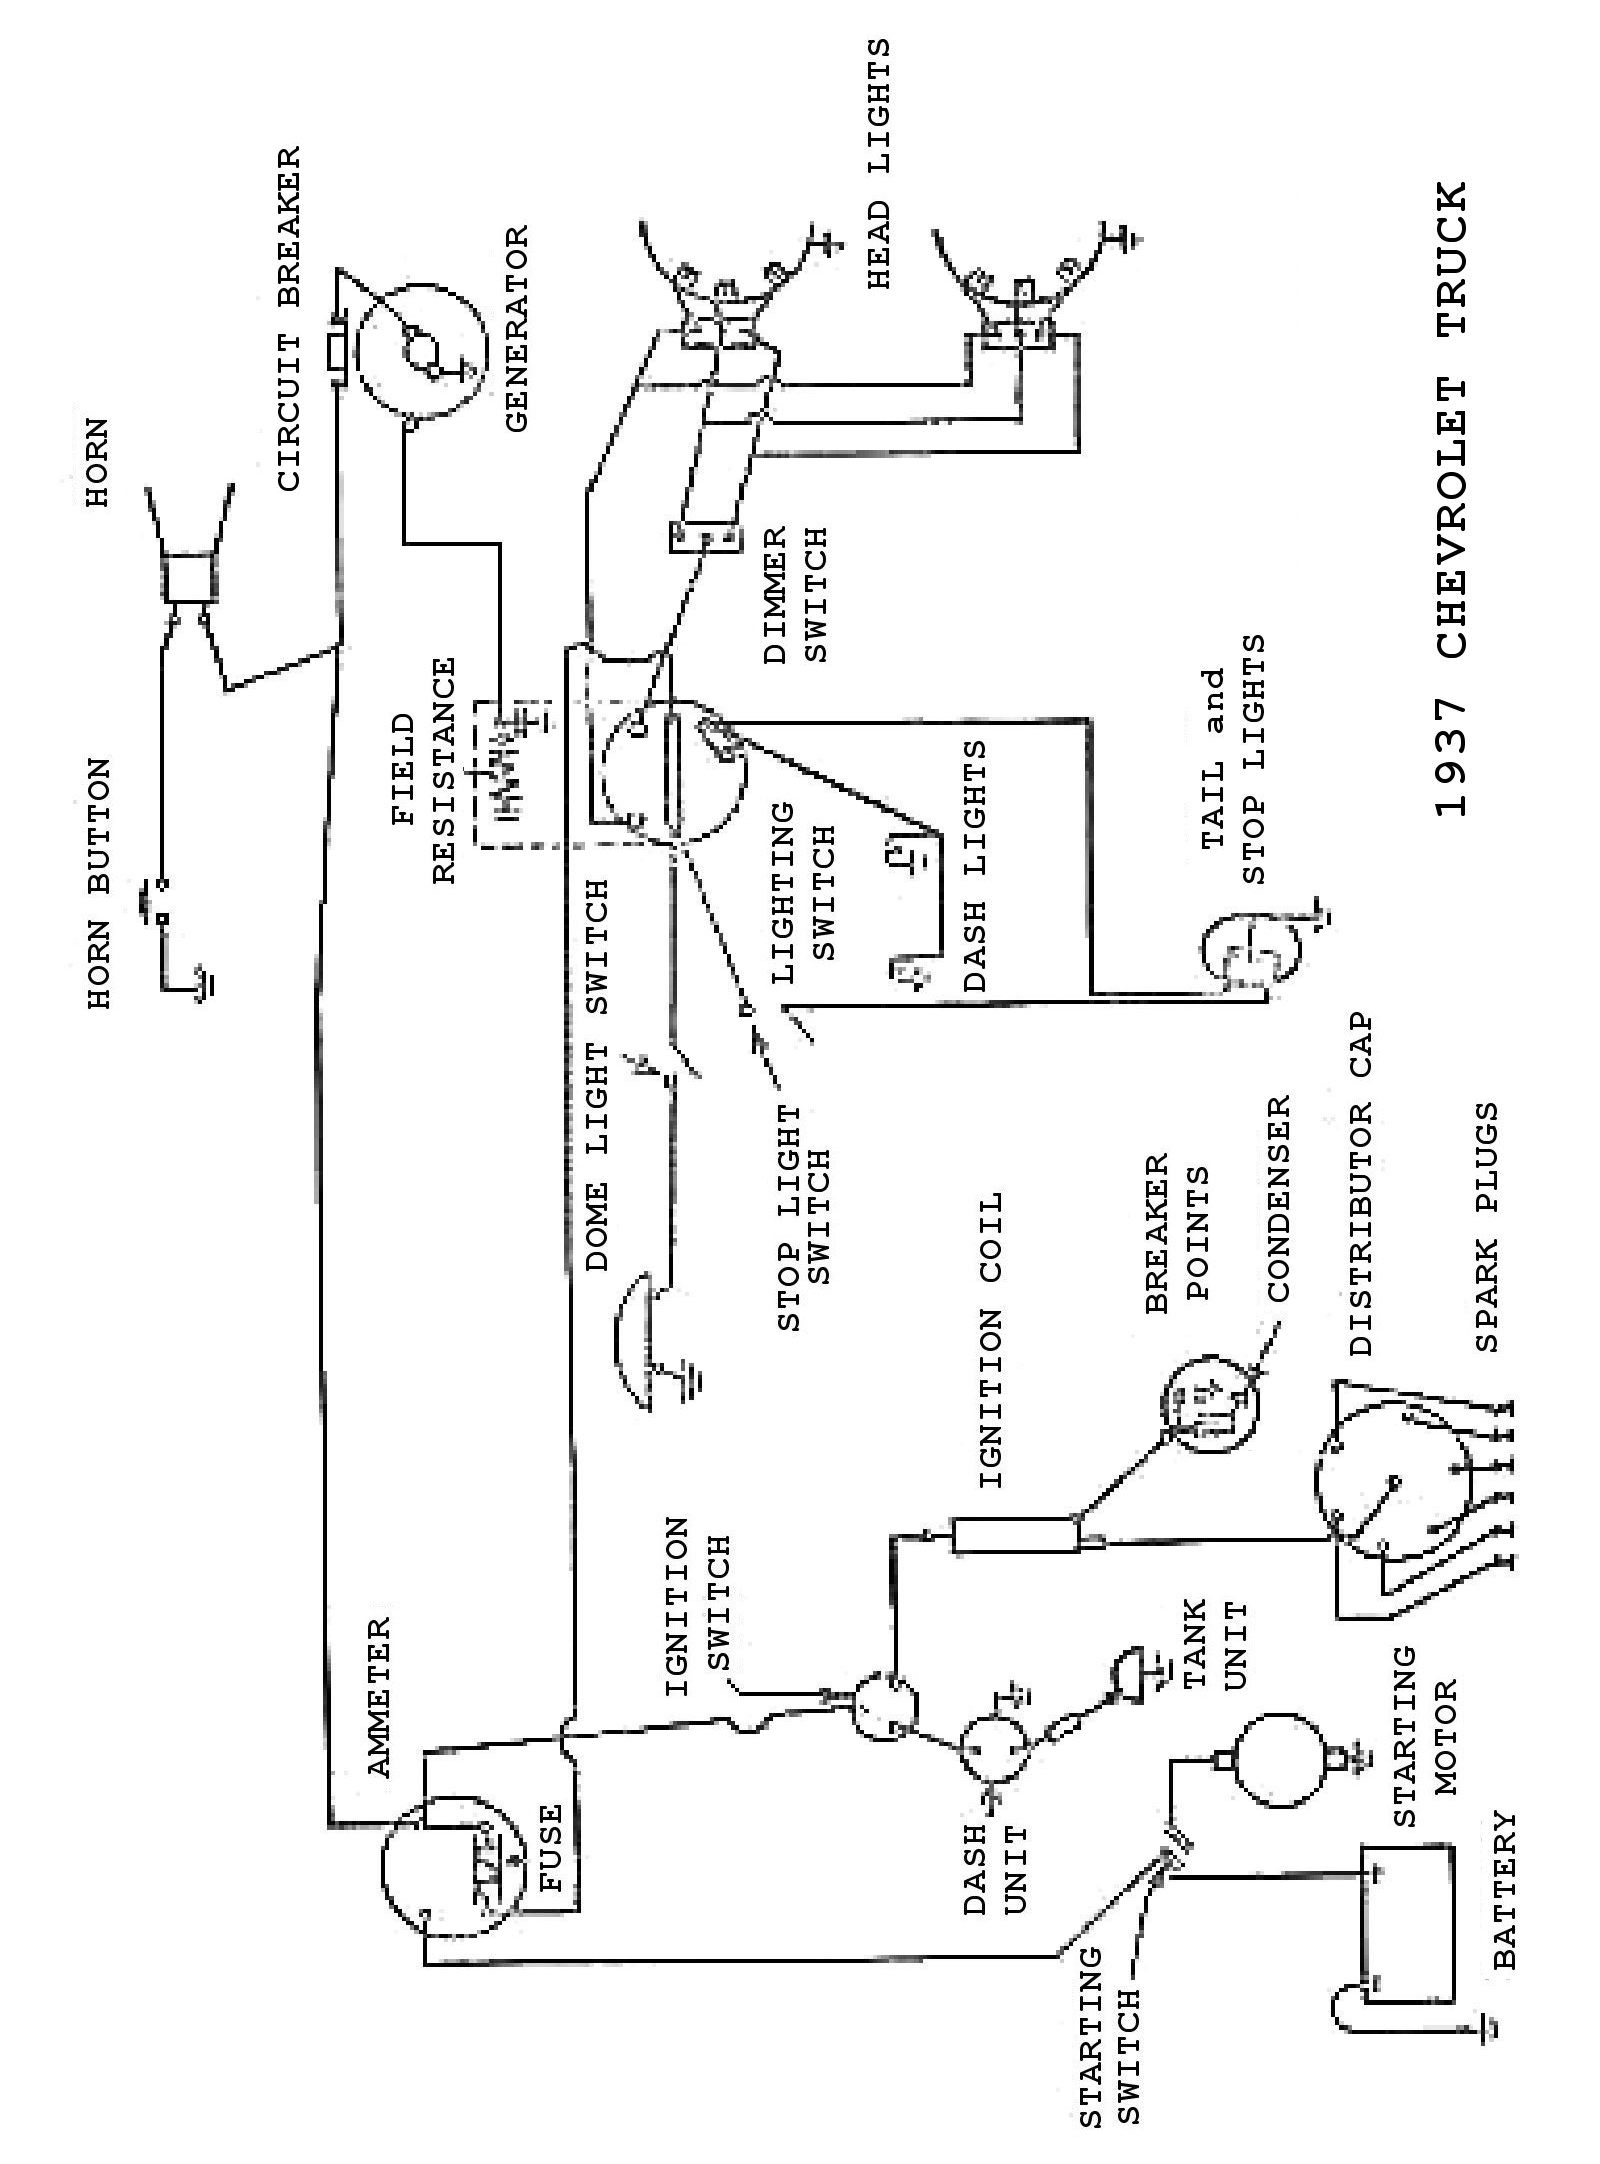 Firebird Wiring Diagram Mirror